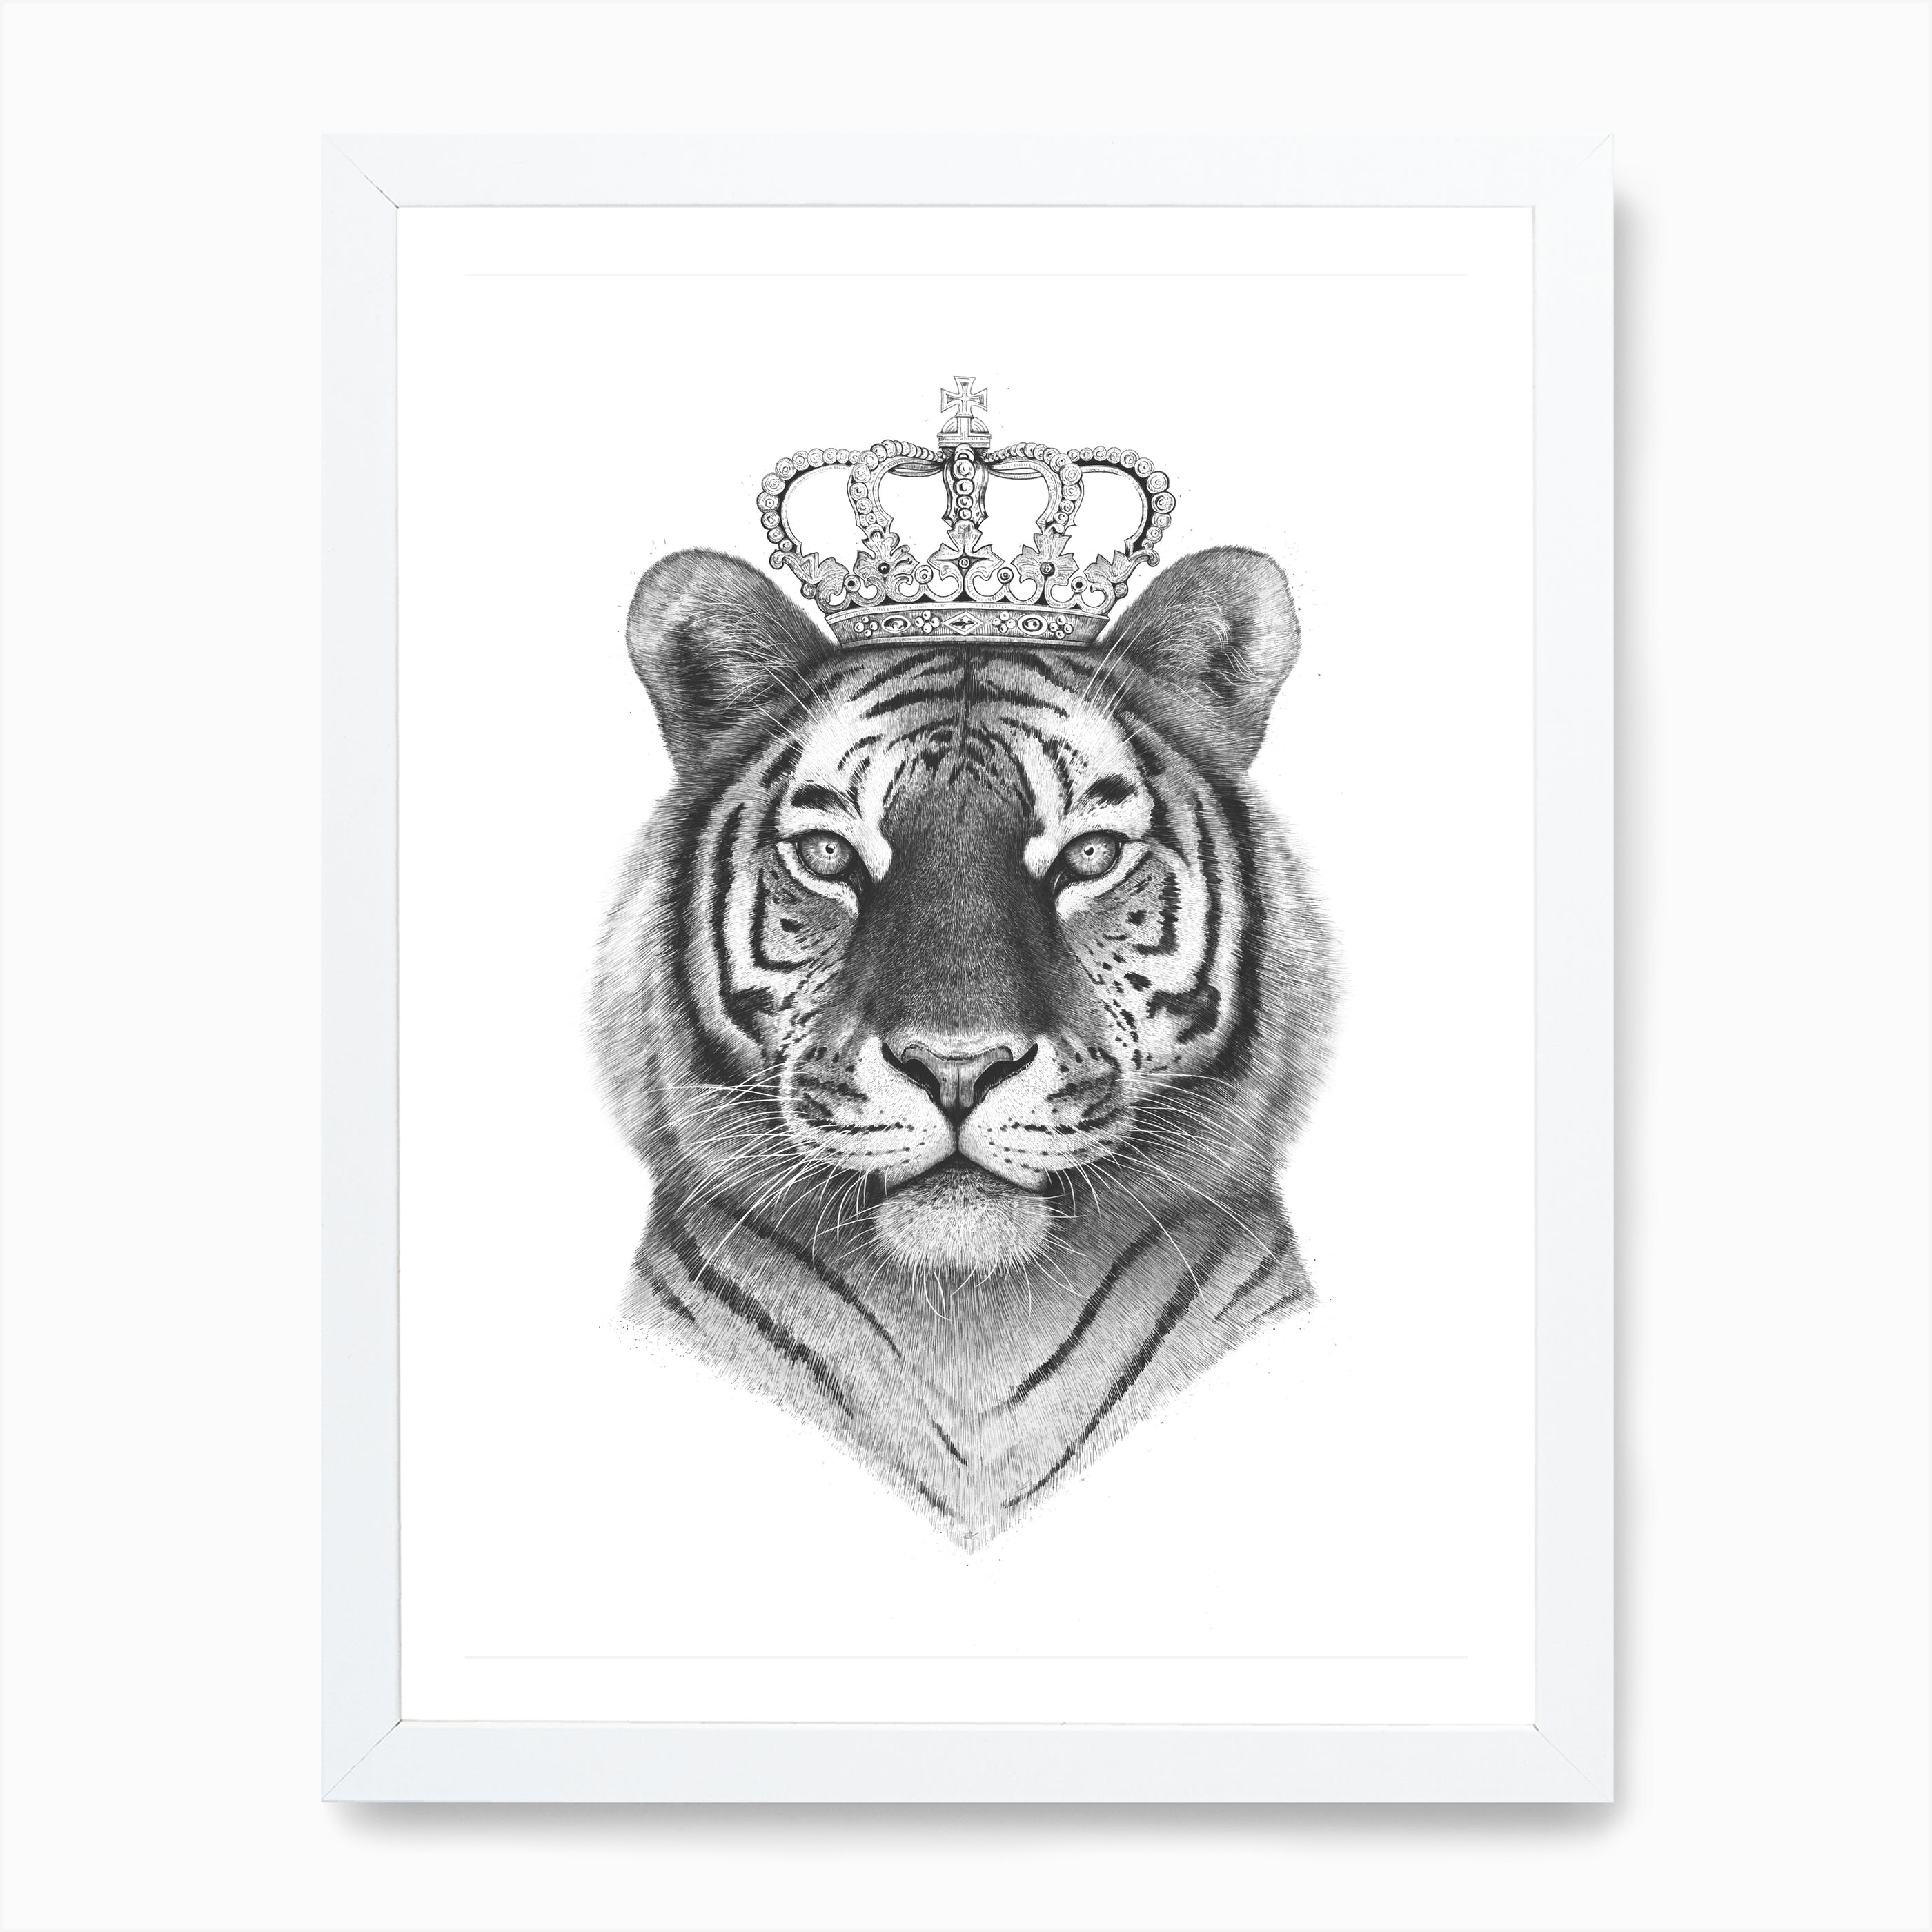 Tiger Black And White Photo Picture Print On Framed Canvas Wall Art Home Decor